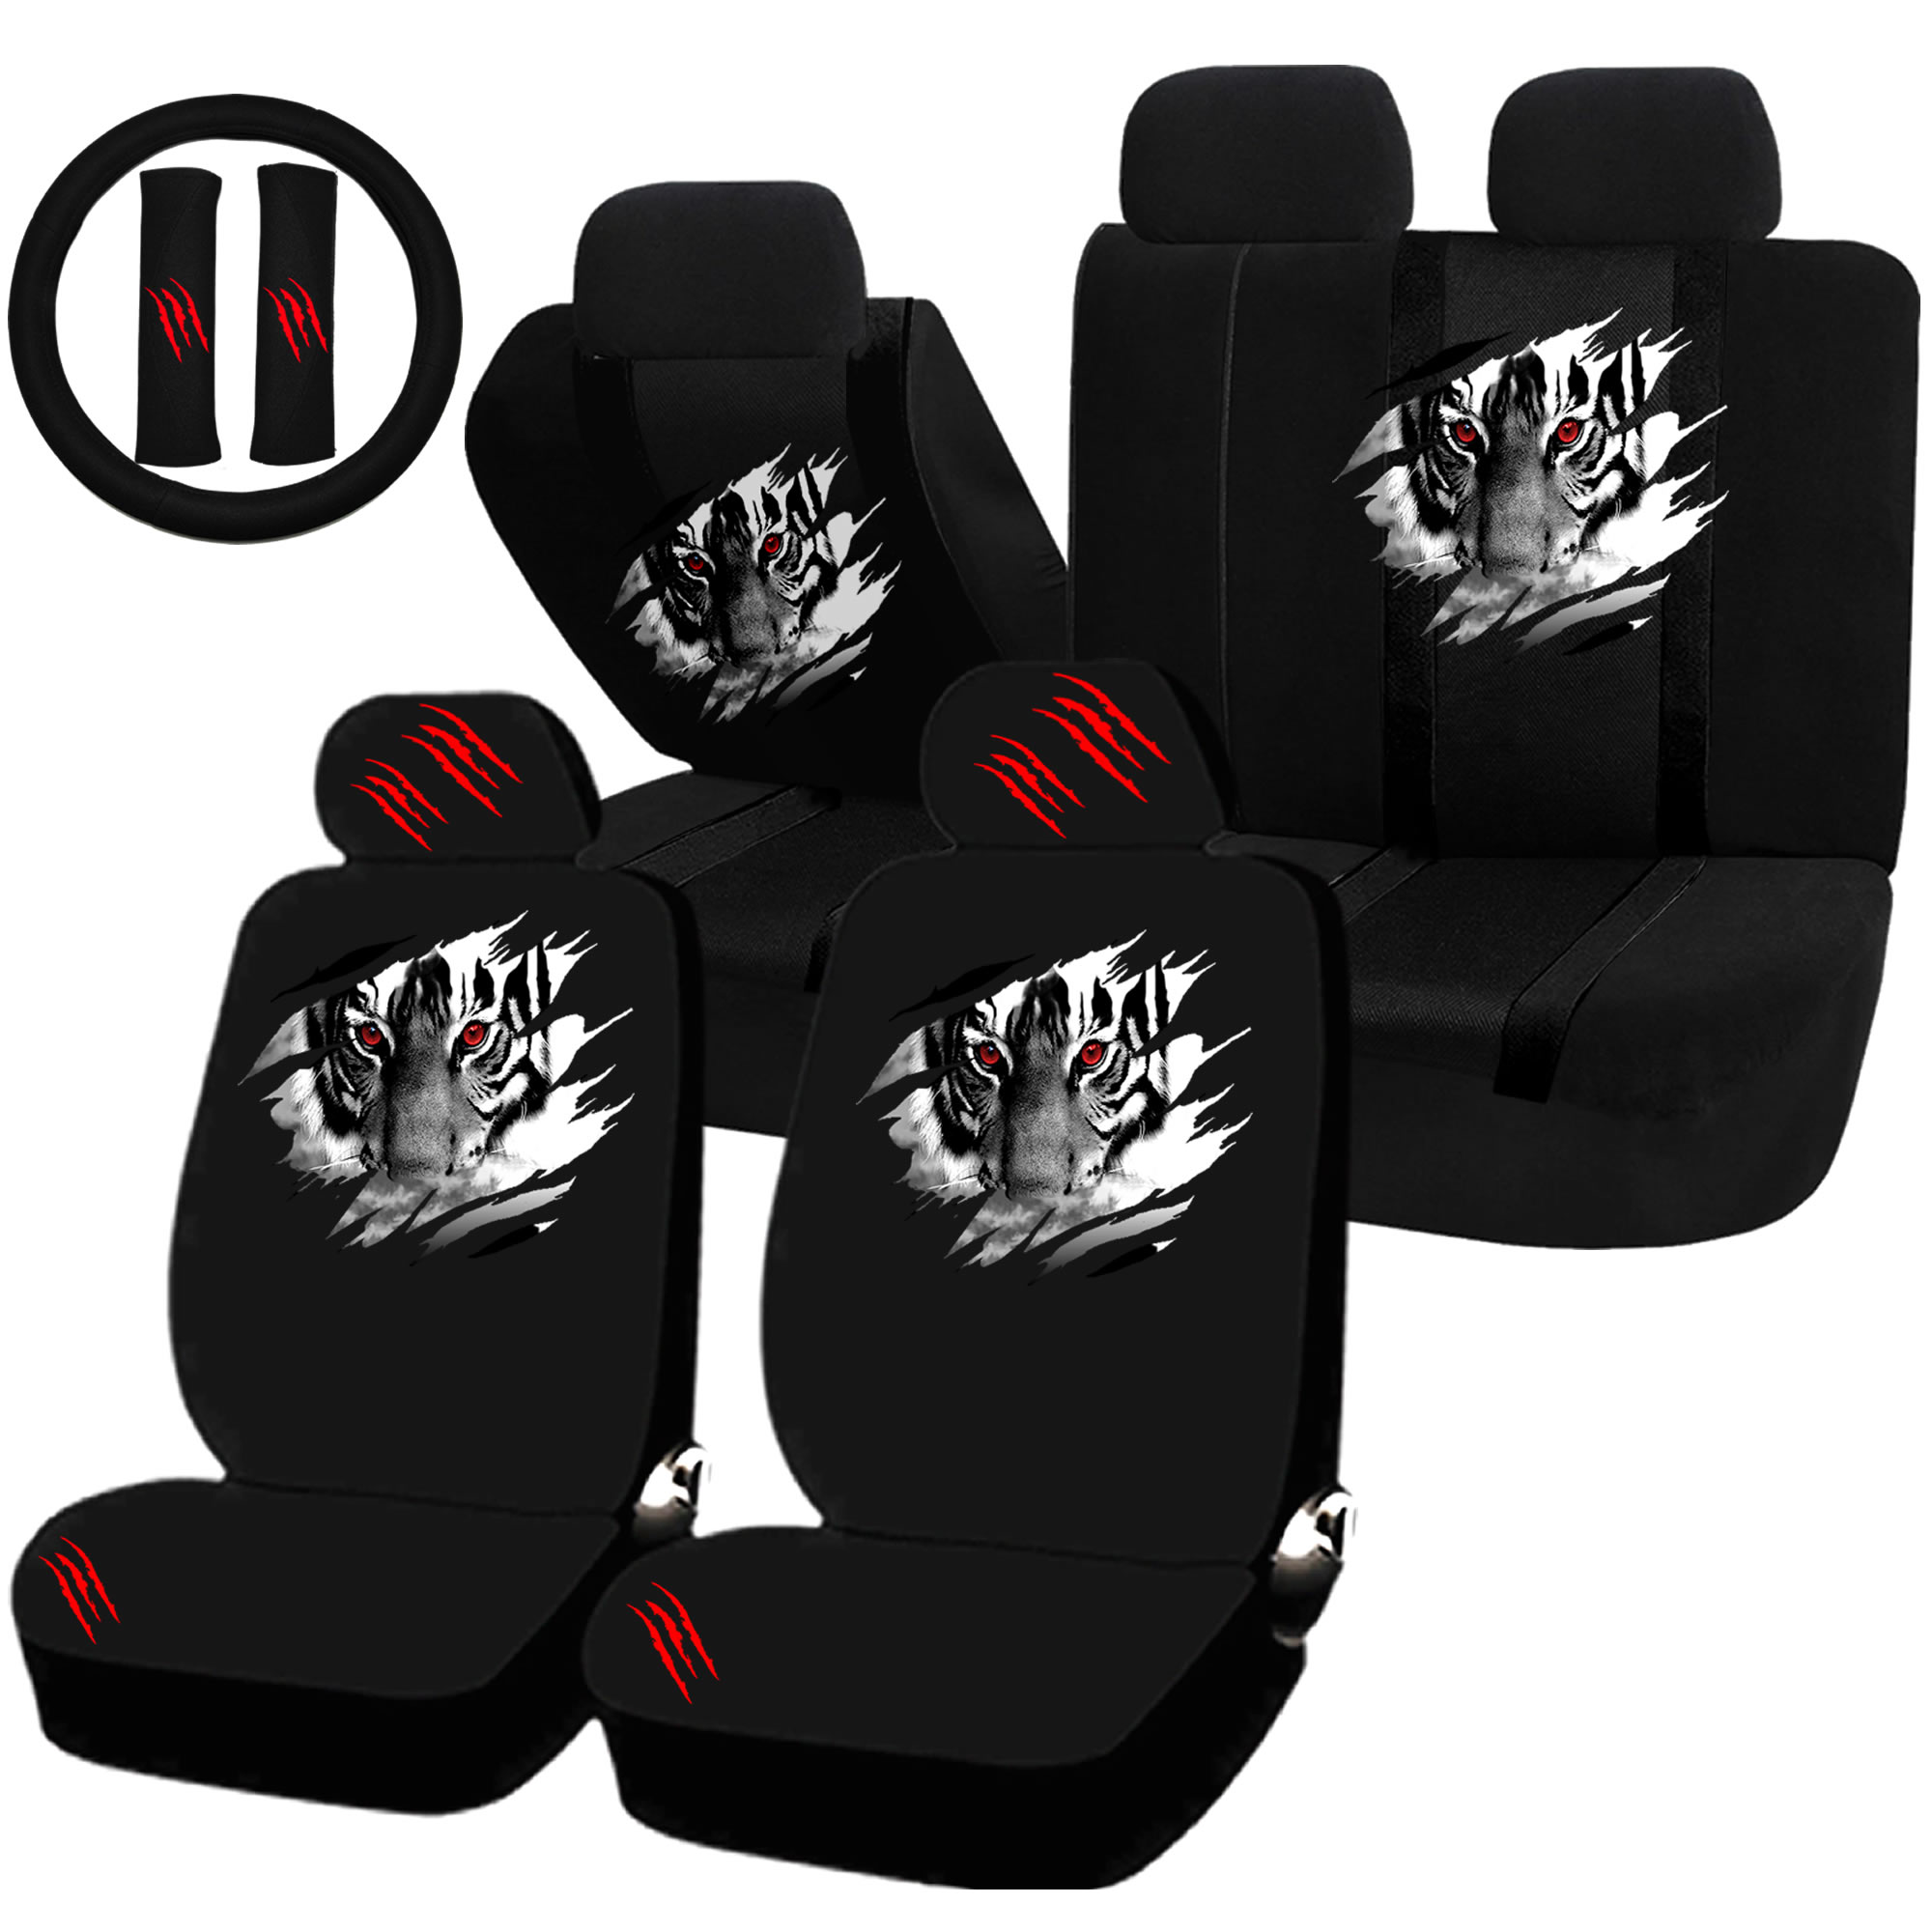 22PC Tiger Within Animal Inside Seat Covers & Steering Wheel Set Universal Car Truck SUV